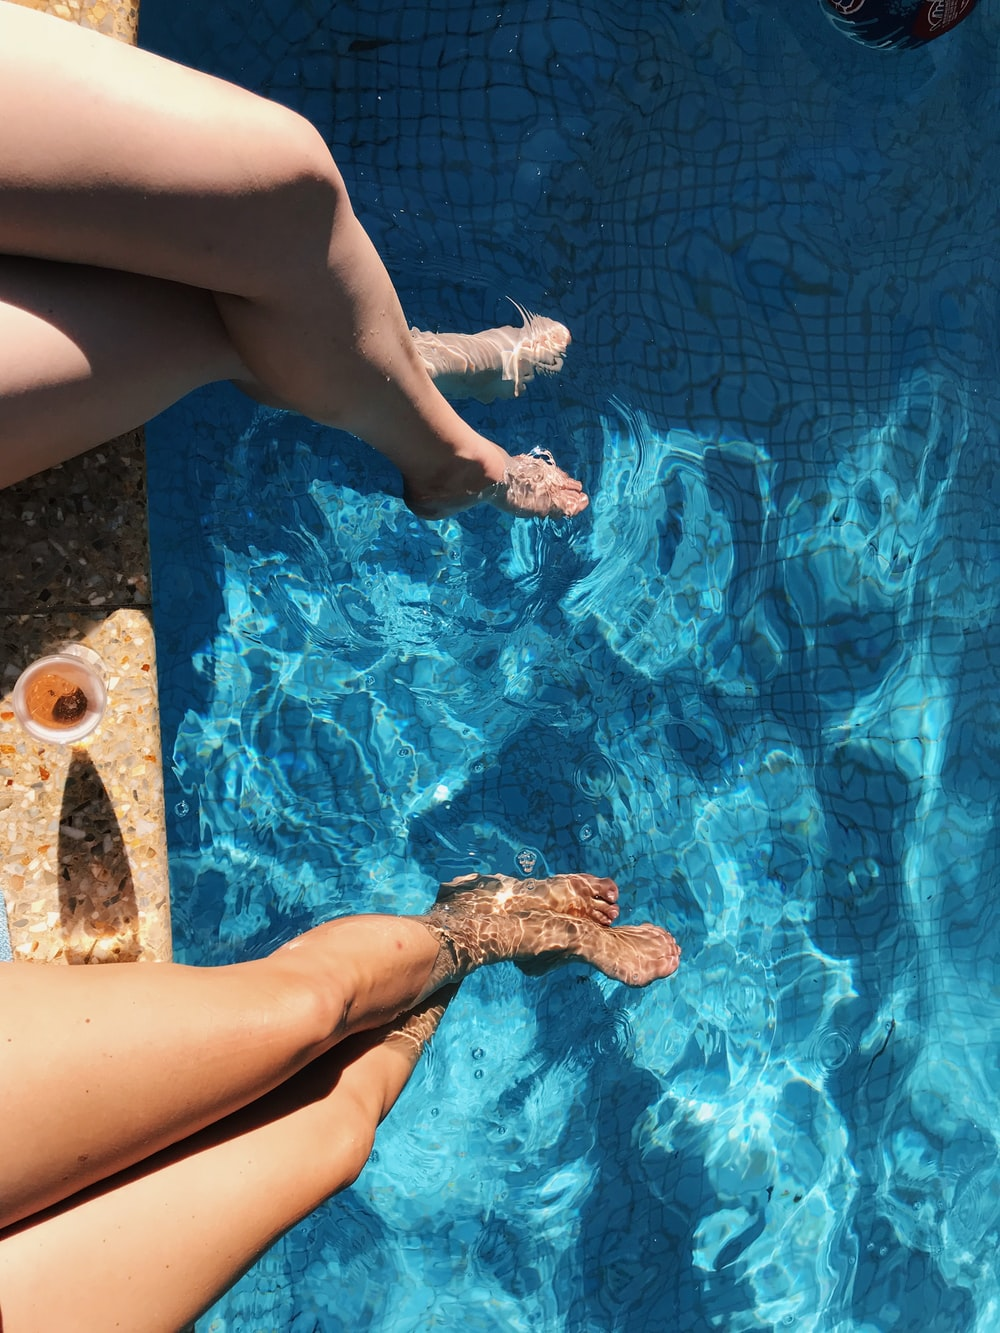 two women's feet in the pool